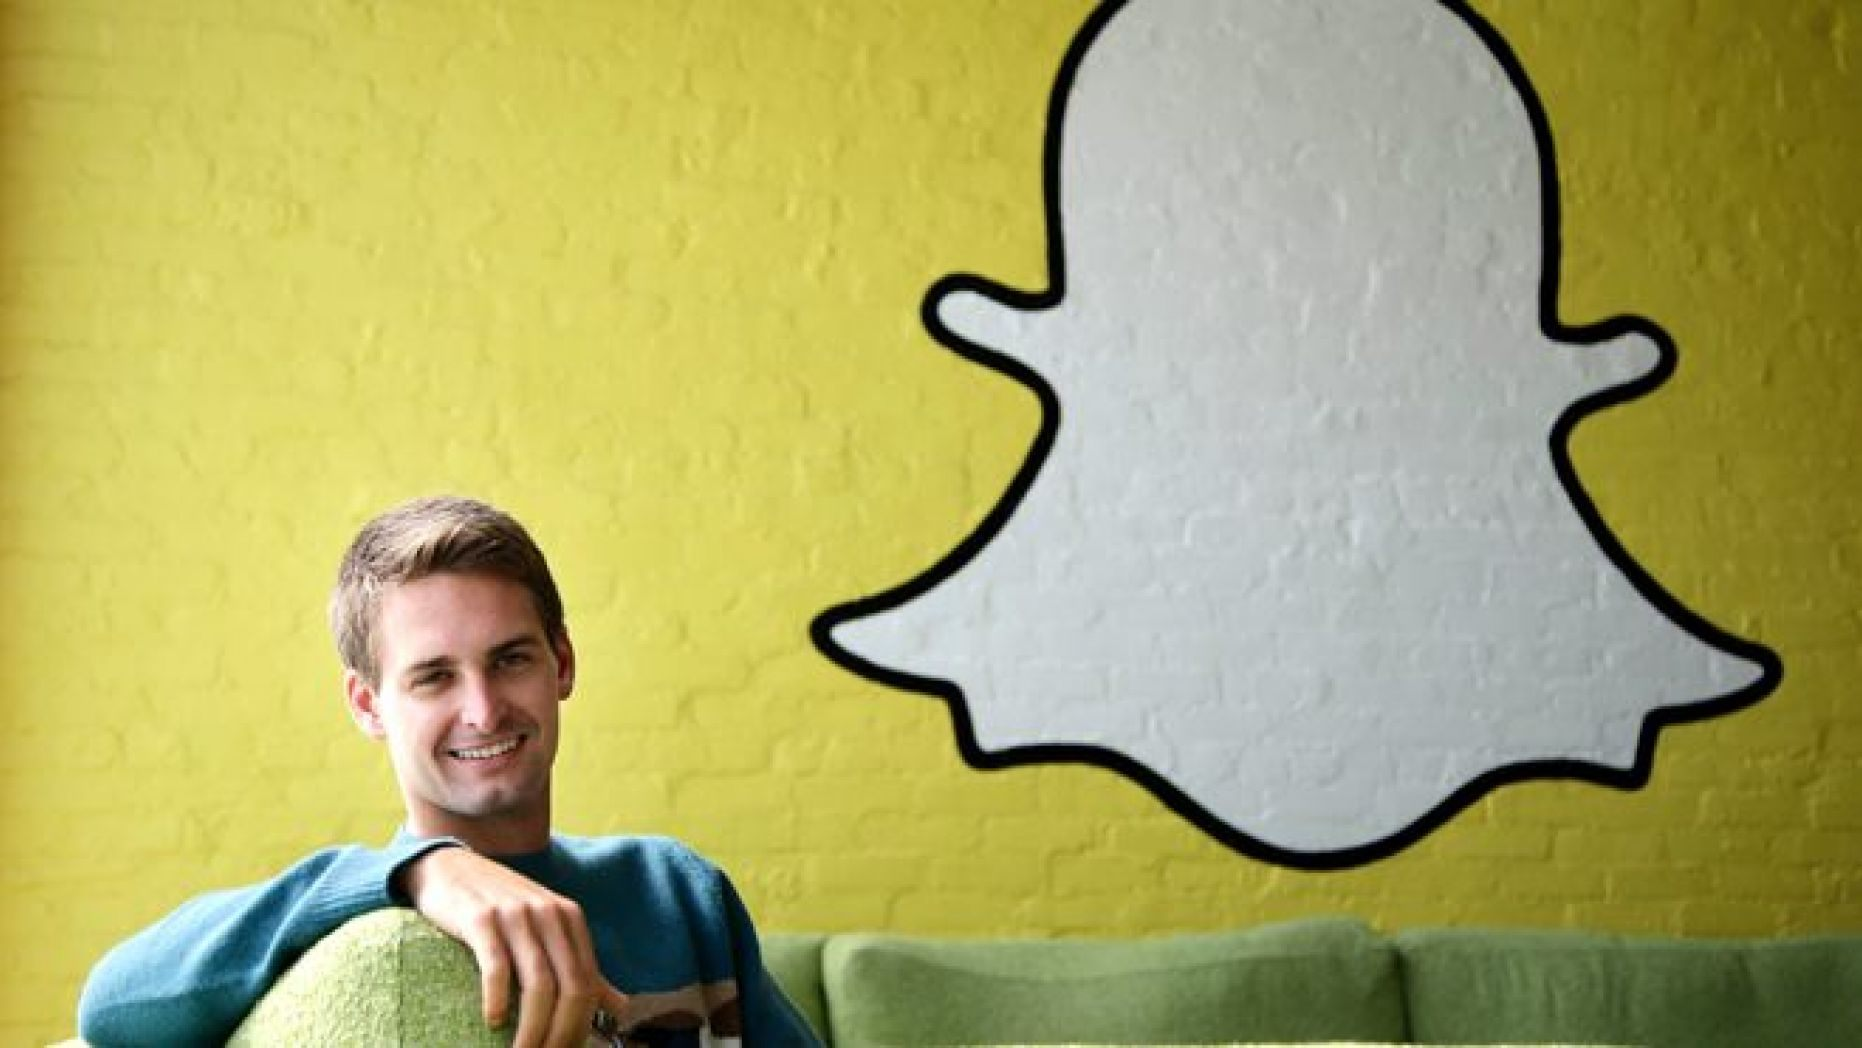 CEO of Snapchat Evan Spiegel